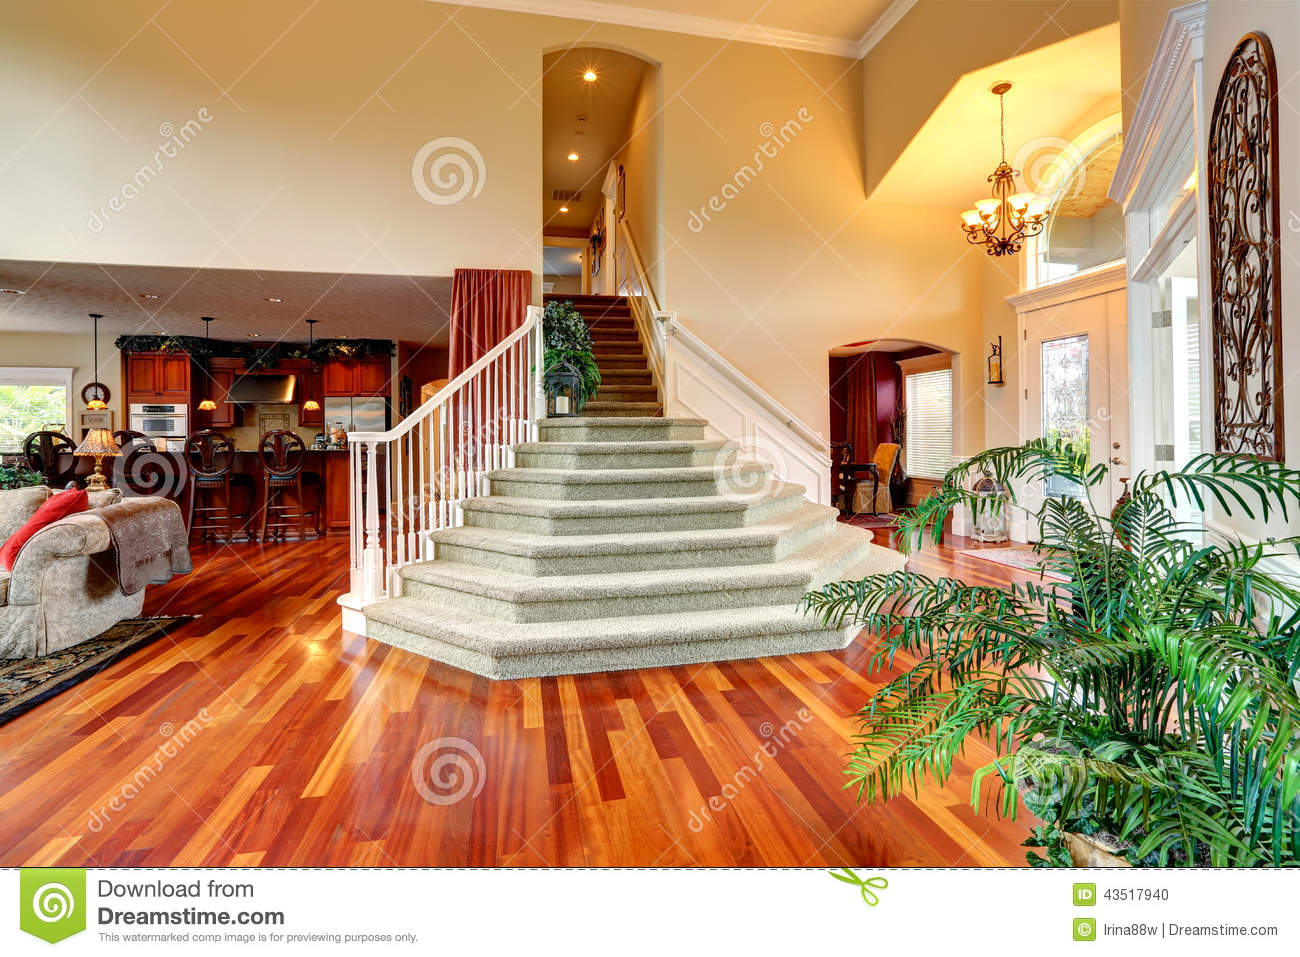 Luxury house interior foyer with beautiful staircase for Interni di case classiche